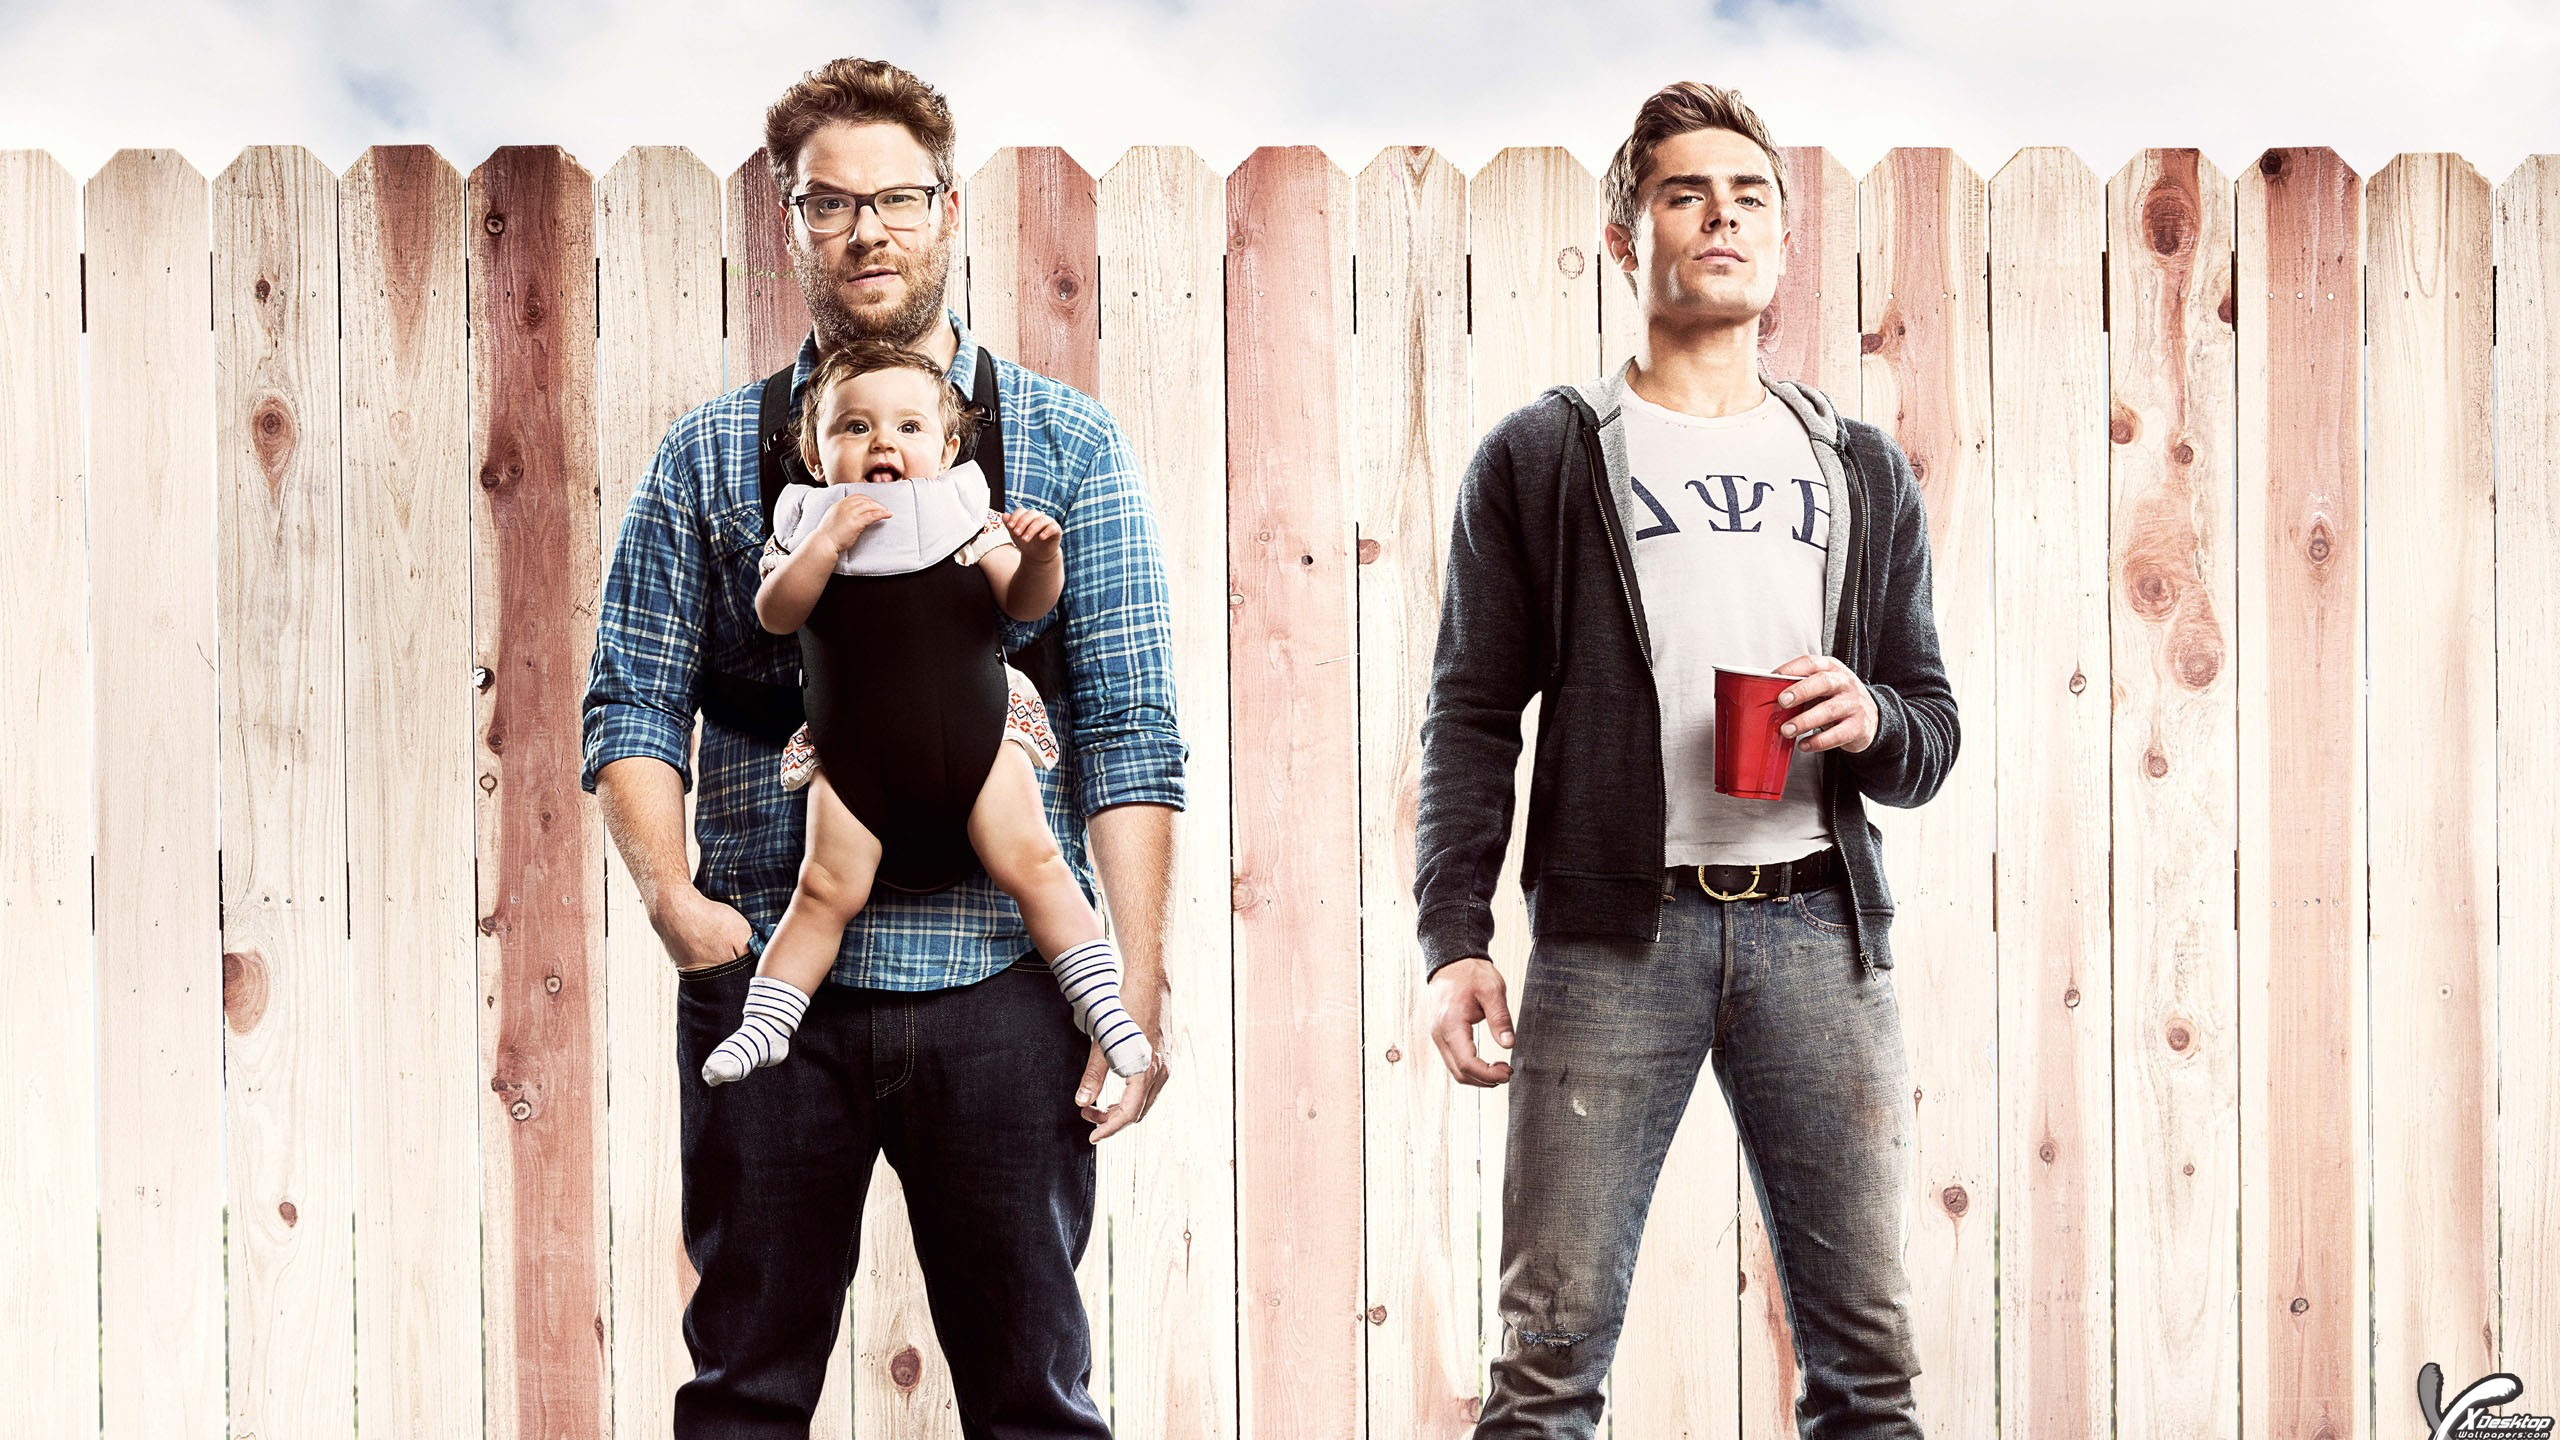 Seth Rogen Wallpapers, Photos & Image in HD